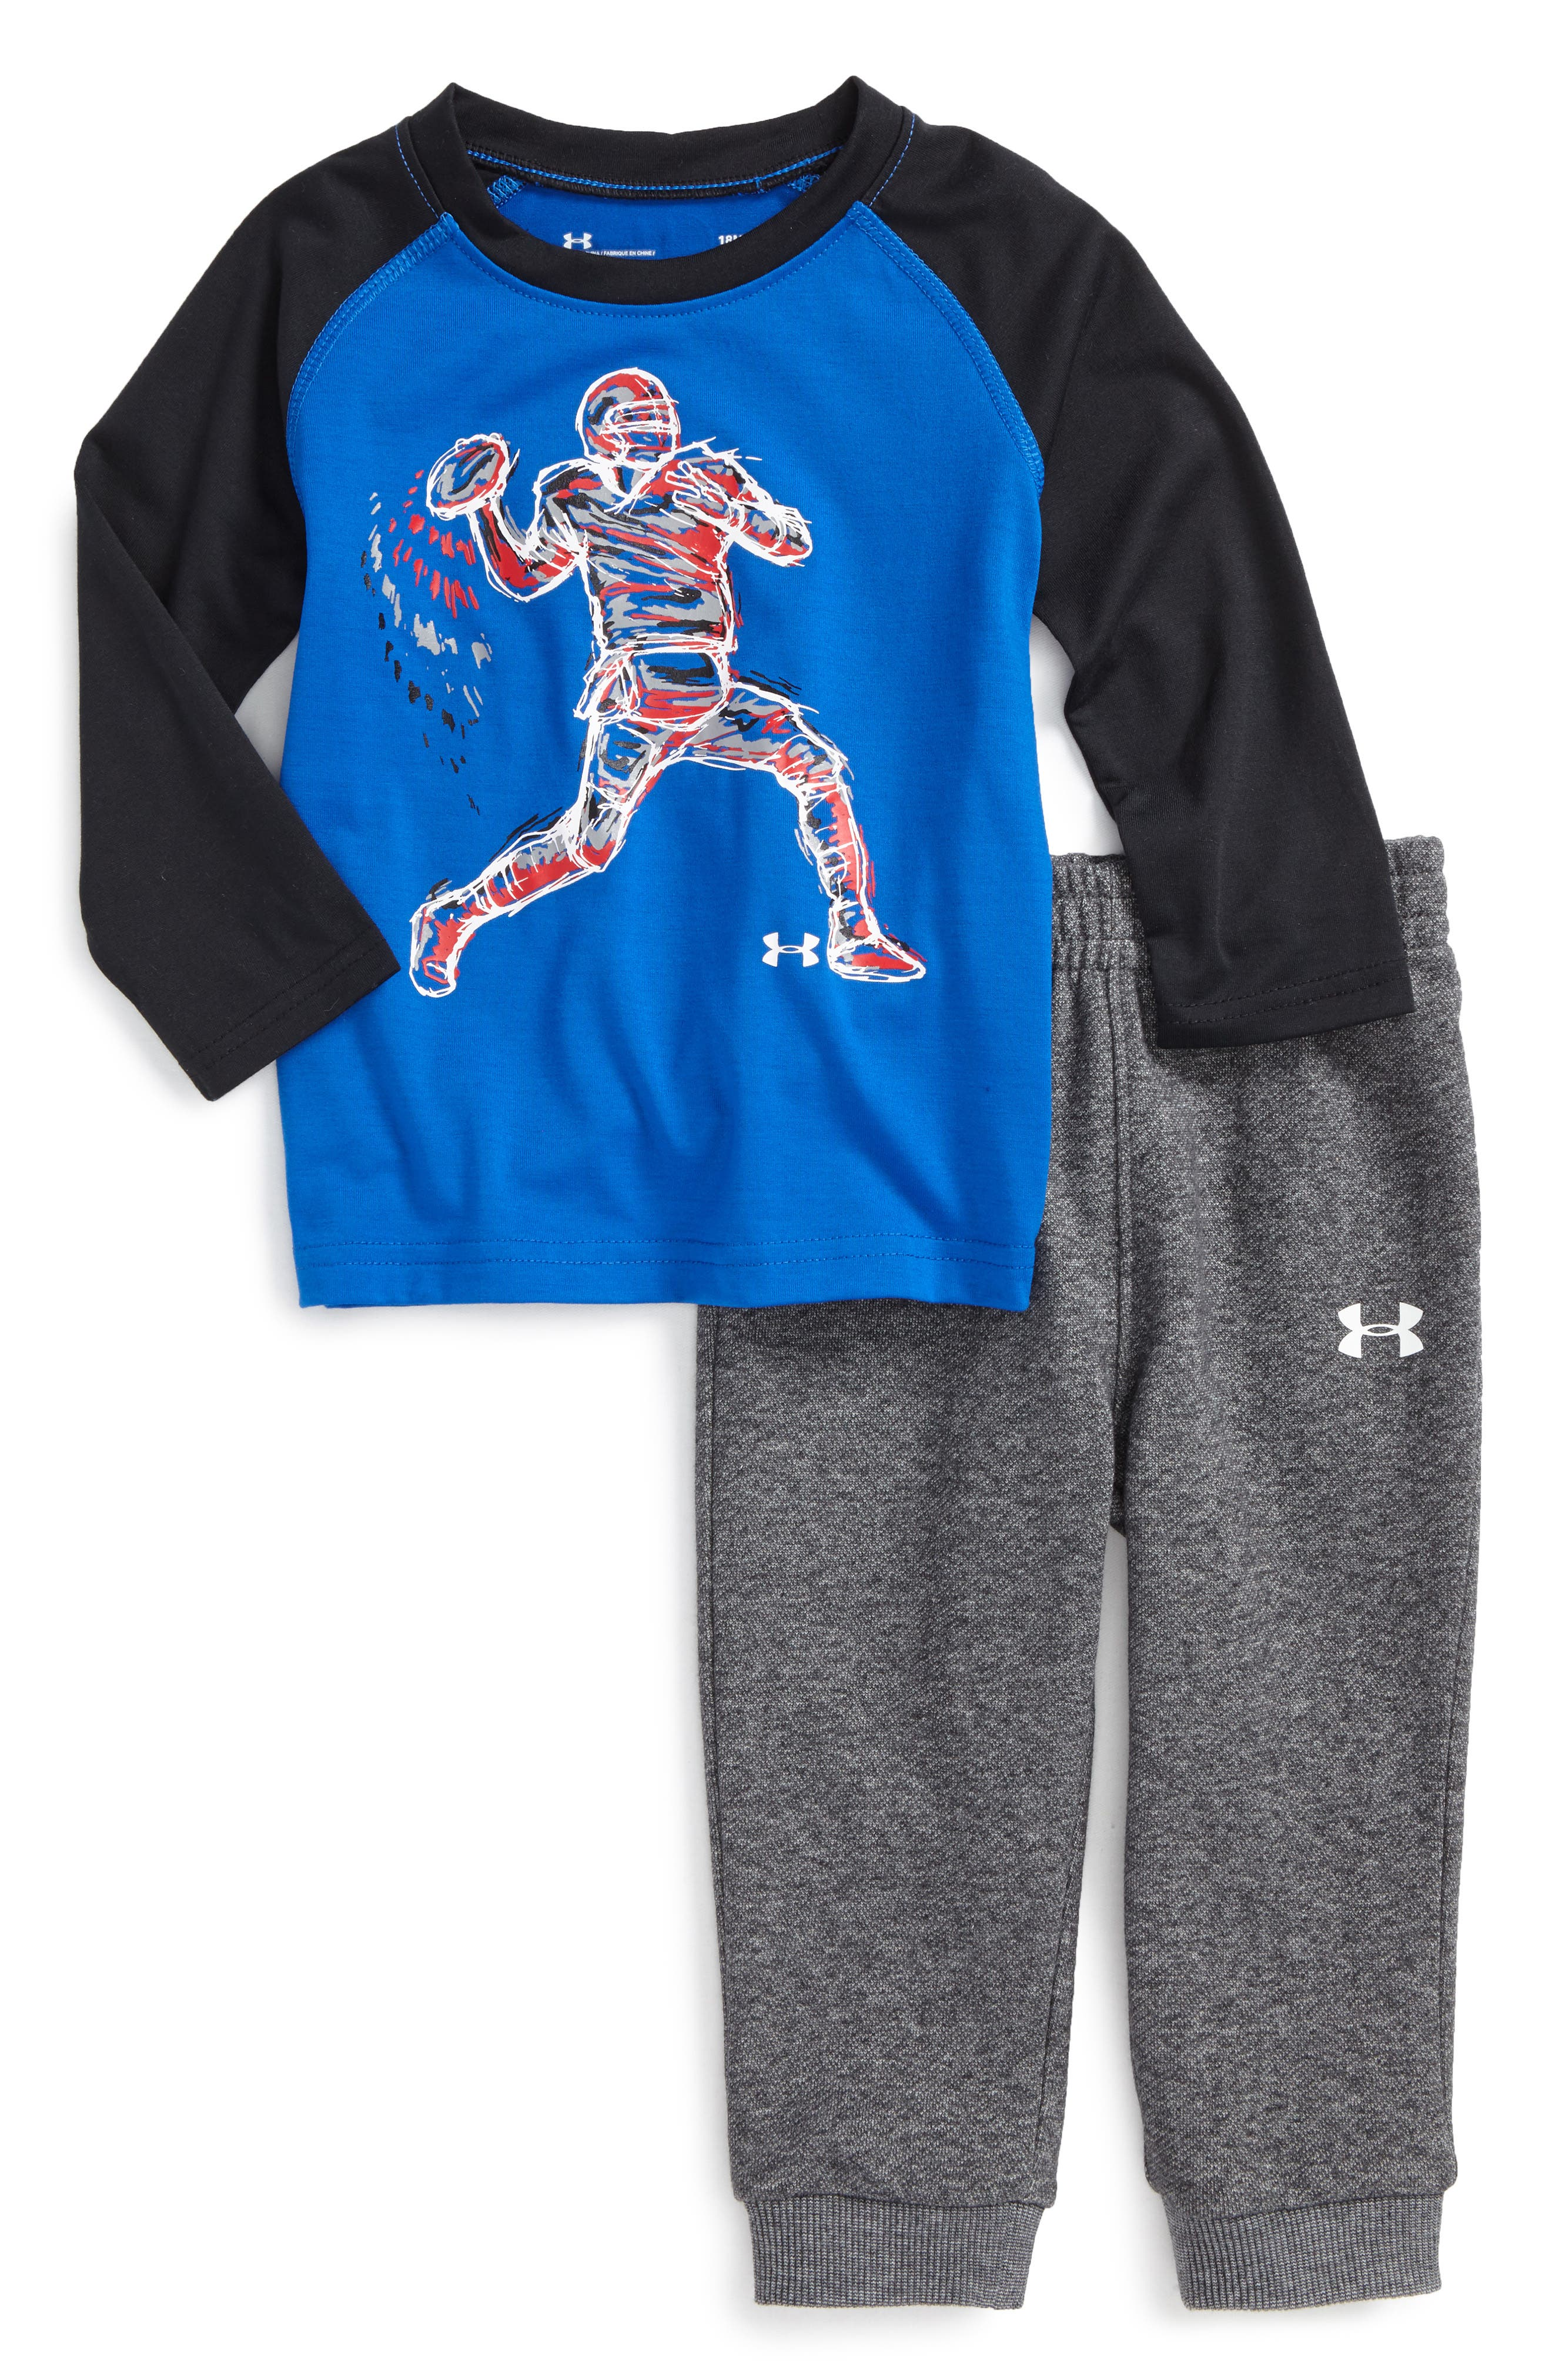 Main Image - Under Armour Illuminated QB Raglan T-Shirt & Sweatpants (Baby Boys)